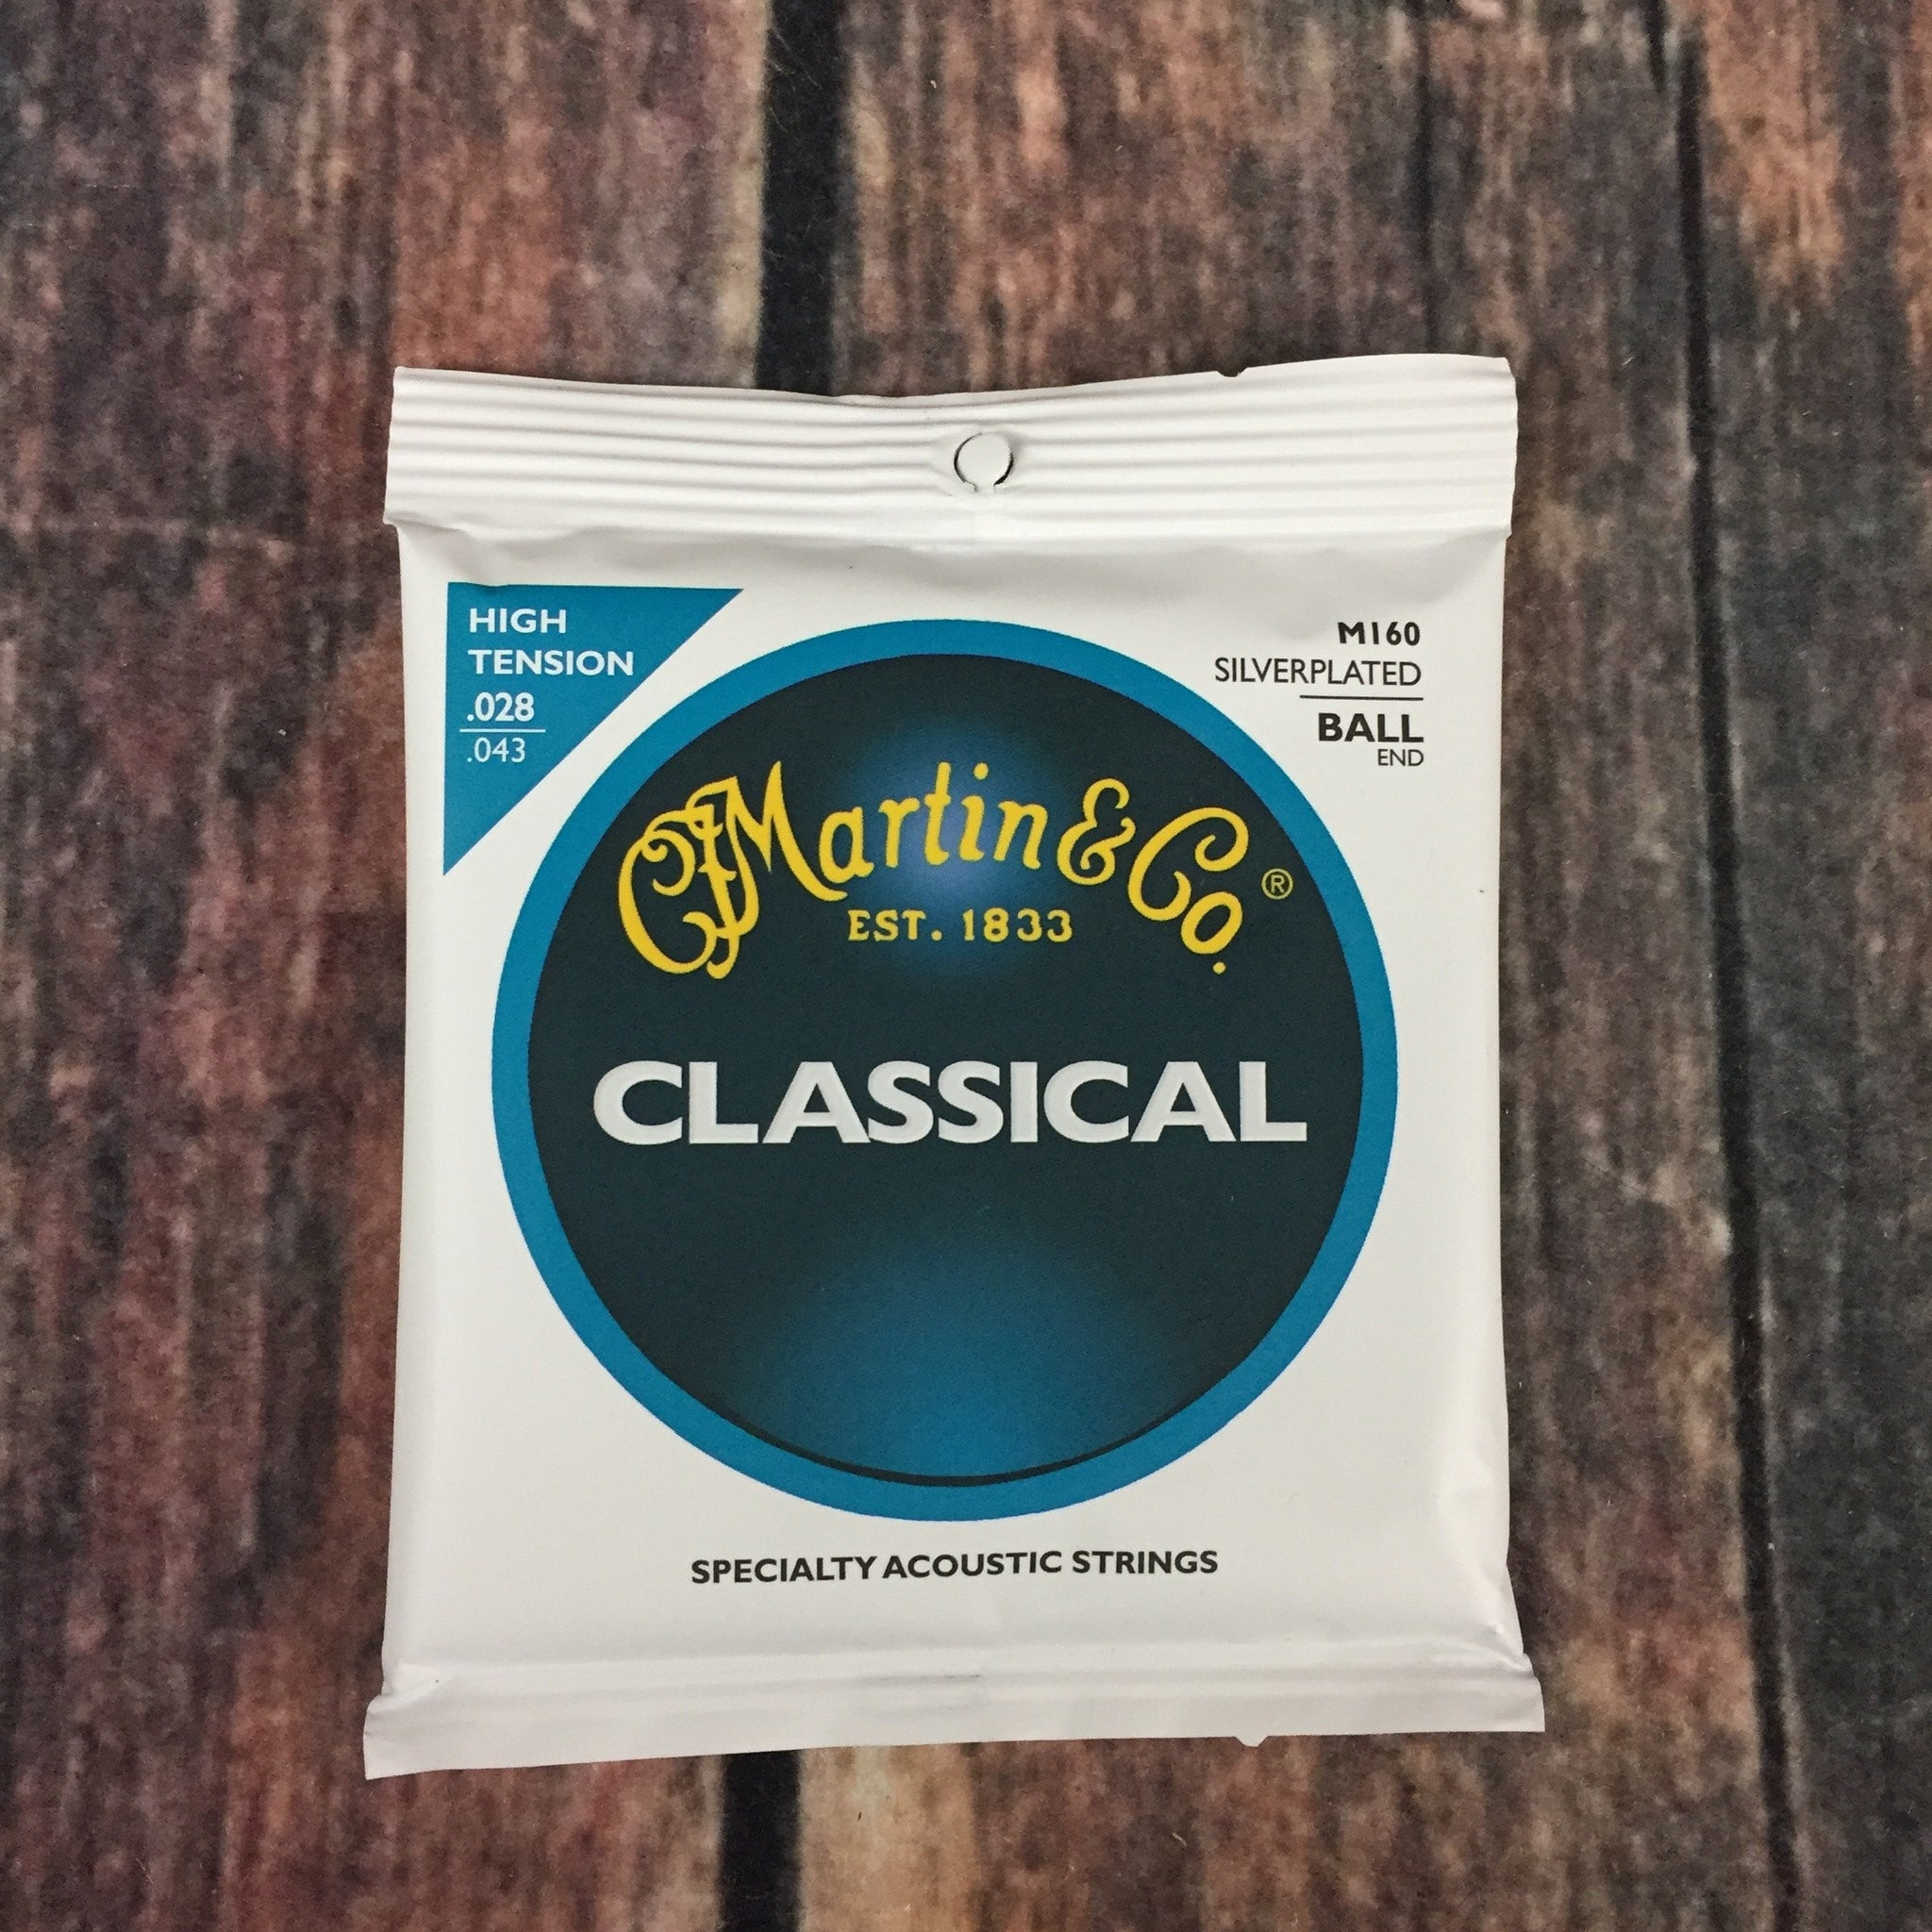 NEW MARTIN SILVERPLATED BALL END HIGH TENSION CLASSICAL GUITAR STRINGS 6 PACK